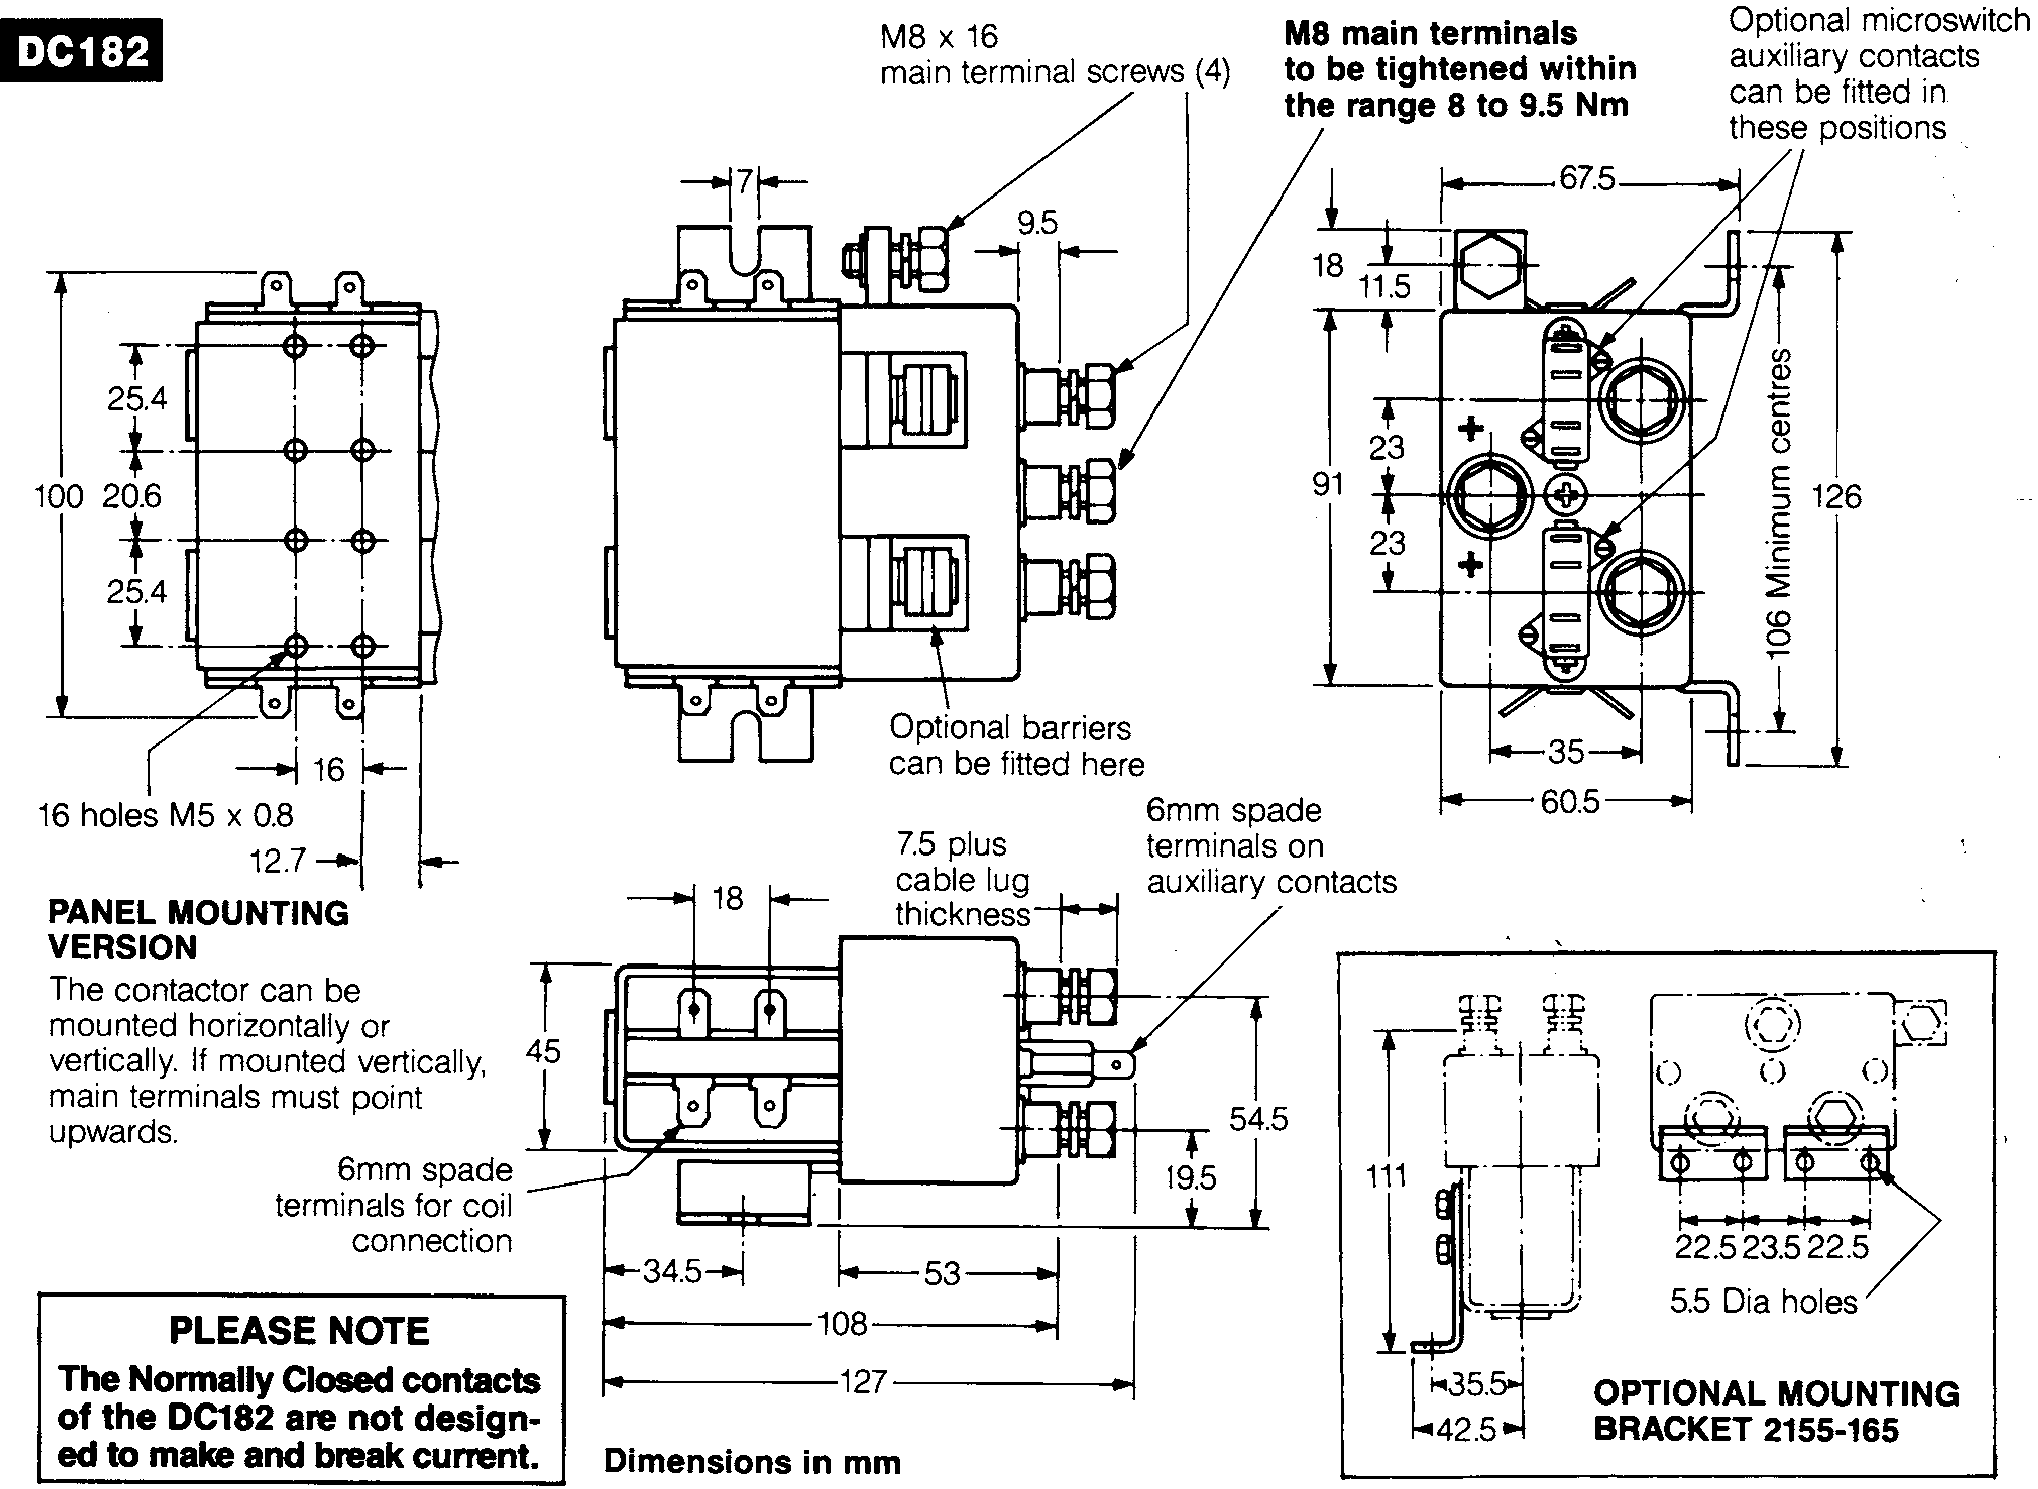 wiring diagram of magnetic contactor trailer lights 4 wire albright dc model dc182b 537t zapi